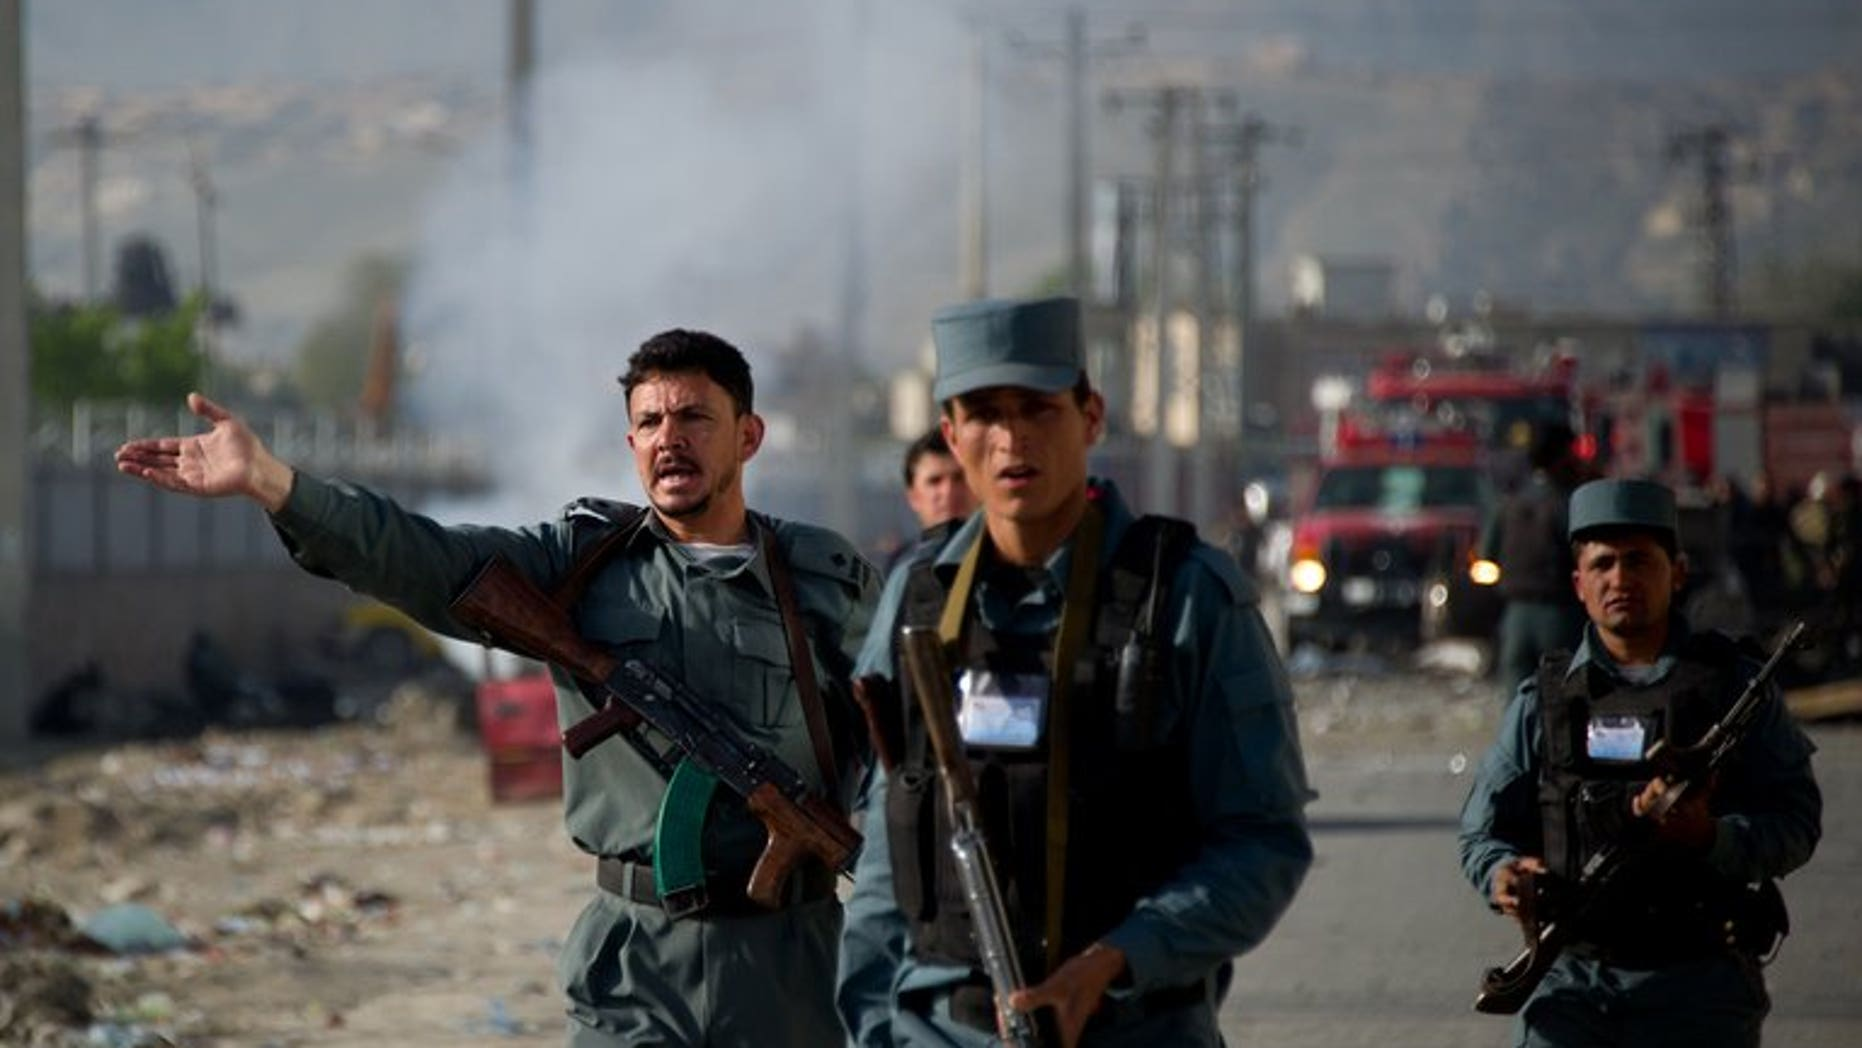 Afghan police personnel gesture as they evacuate onlookers from the site of a suicide bomb attack in Kabul on May 2, 2012. A roadside bomb blamed on the Taliban tore through a police vehicle in southern Afghanistan at the weekend, killing nine people and wounding 15, officials said on Monday.